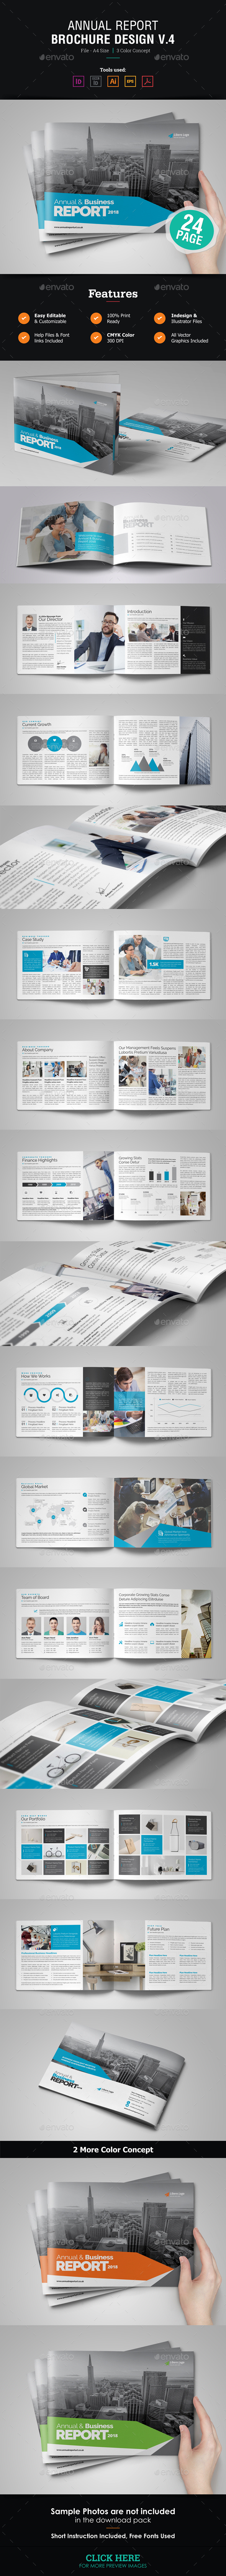 Annual Report Design v4 - Corporate Brochures